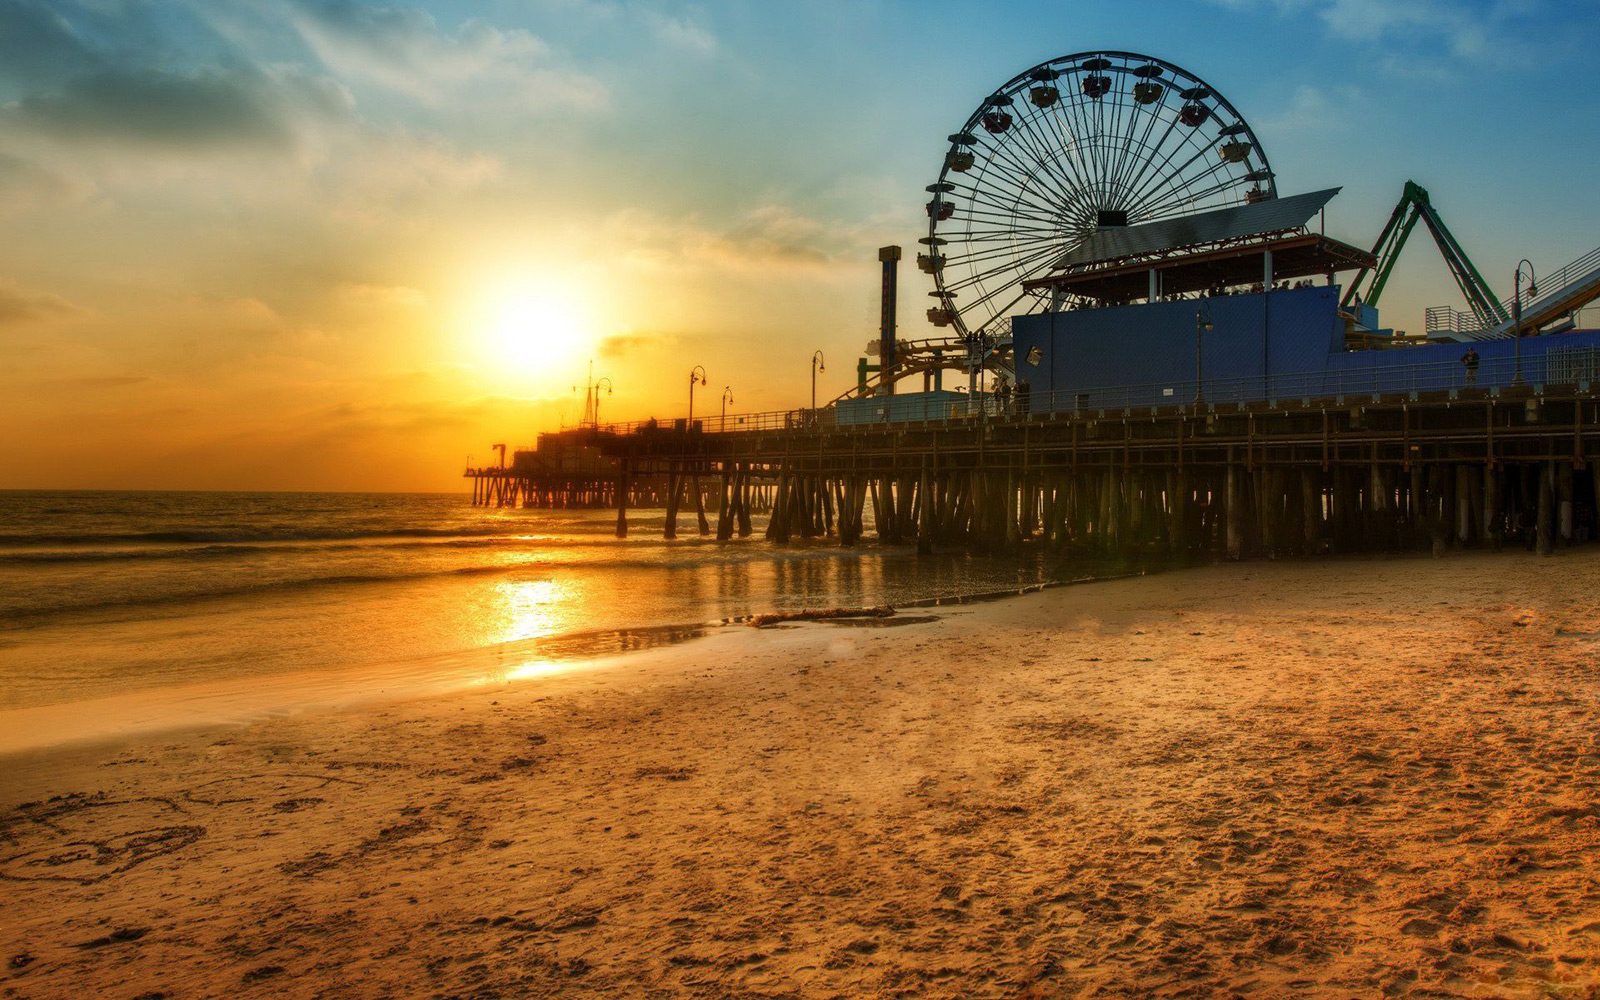 beach-dock-wheel-ferris-sunset-santa-monica-los-angeles